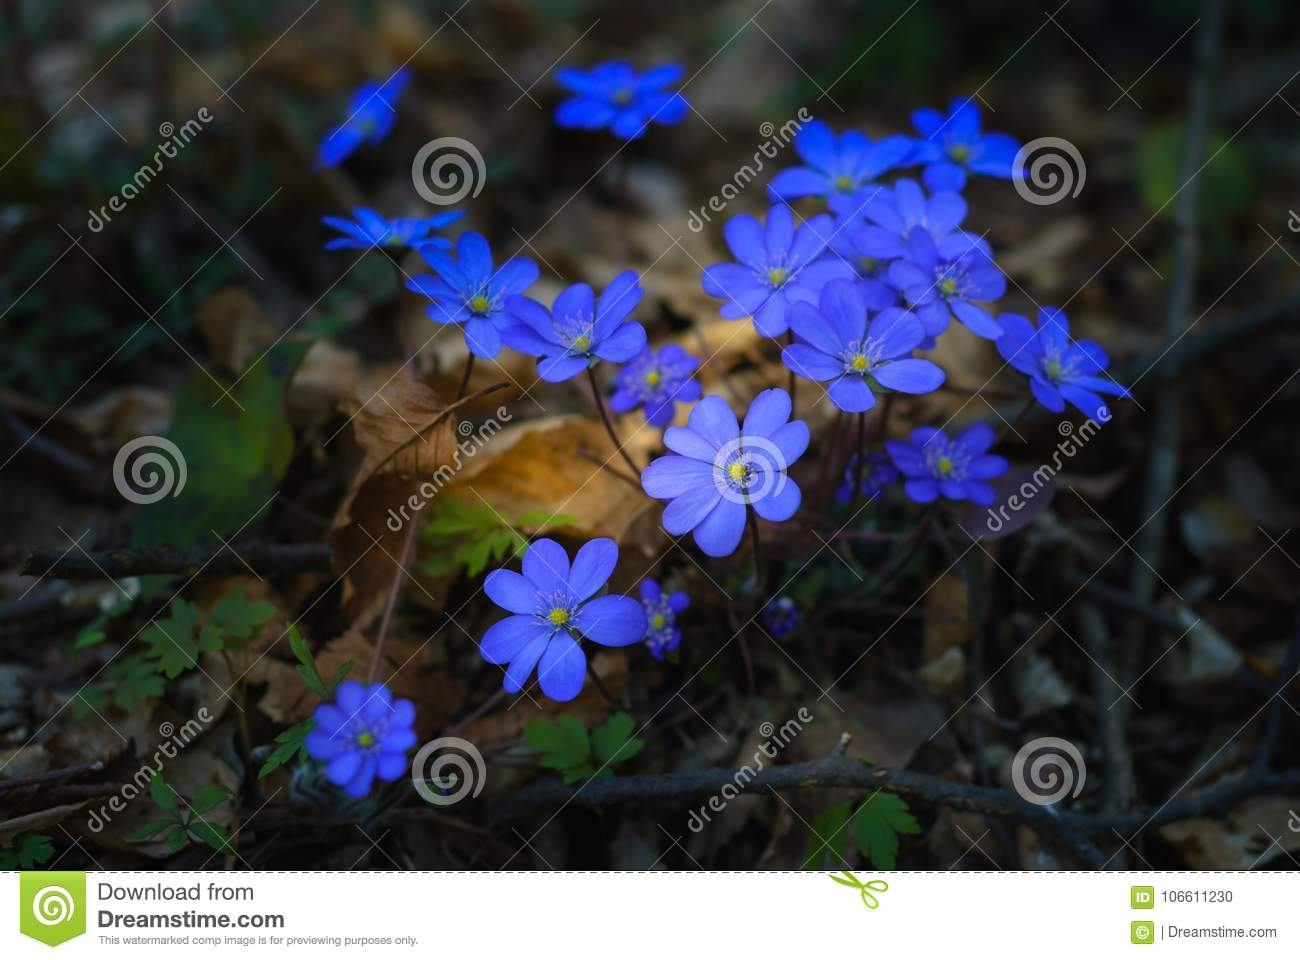 Spring flowers blooming hepatica nobilis in forest sunny day hepatica nobilis small spring purple flowers surrounded with brown leaves on the wet ground mightylinksfo